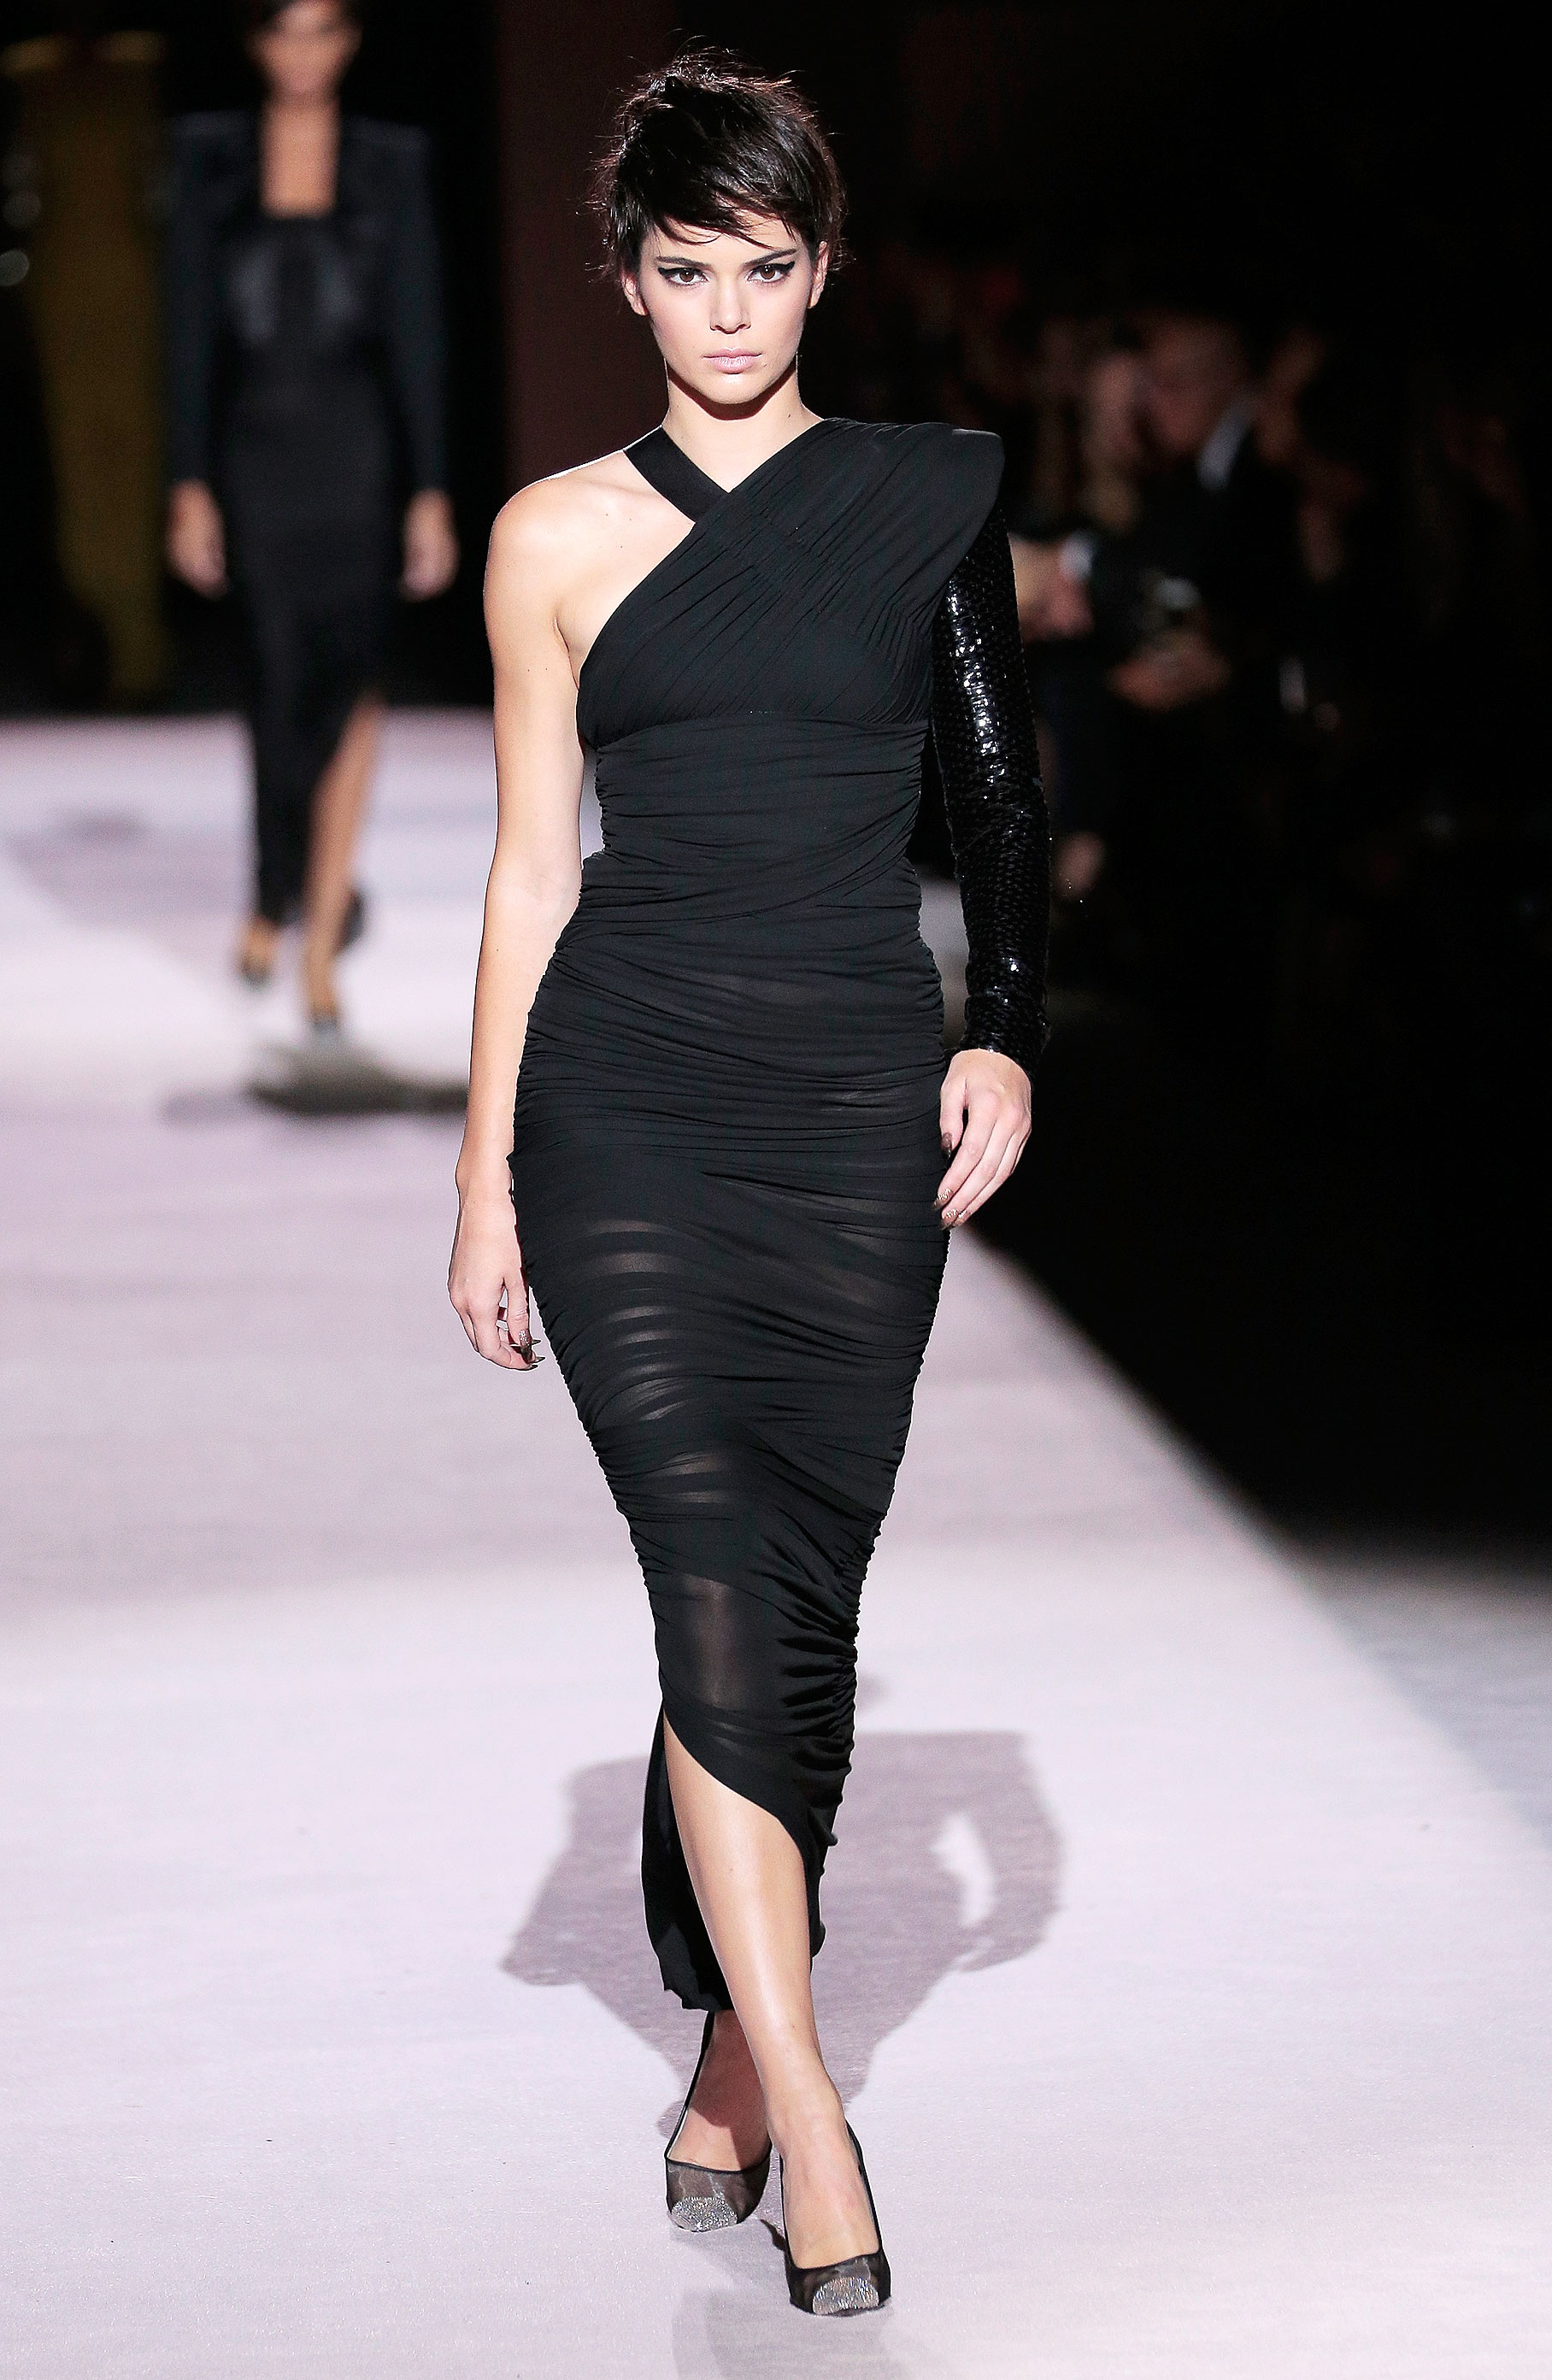 94965ec0d08 Kendall Jenner s Runway Modeling Looks  Pictures